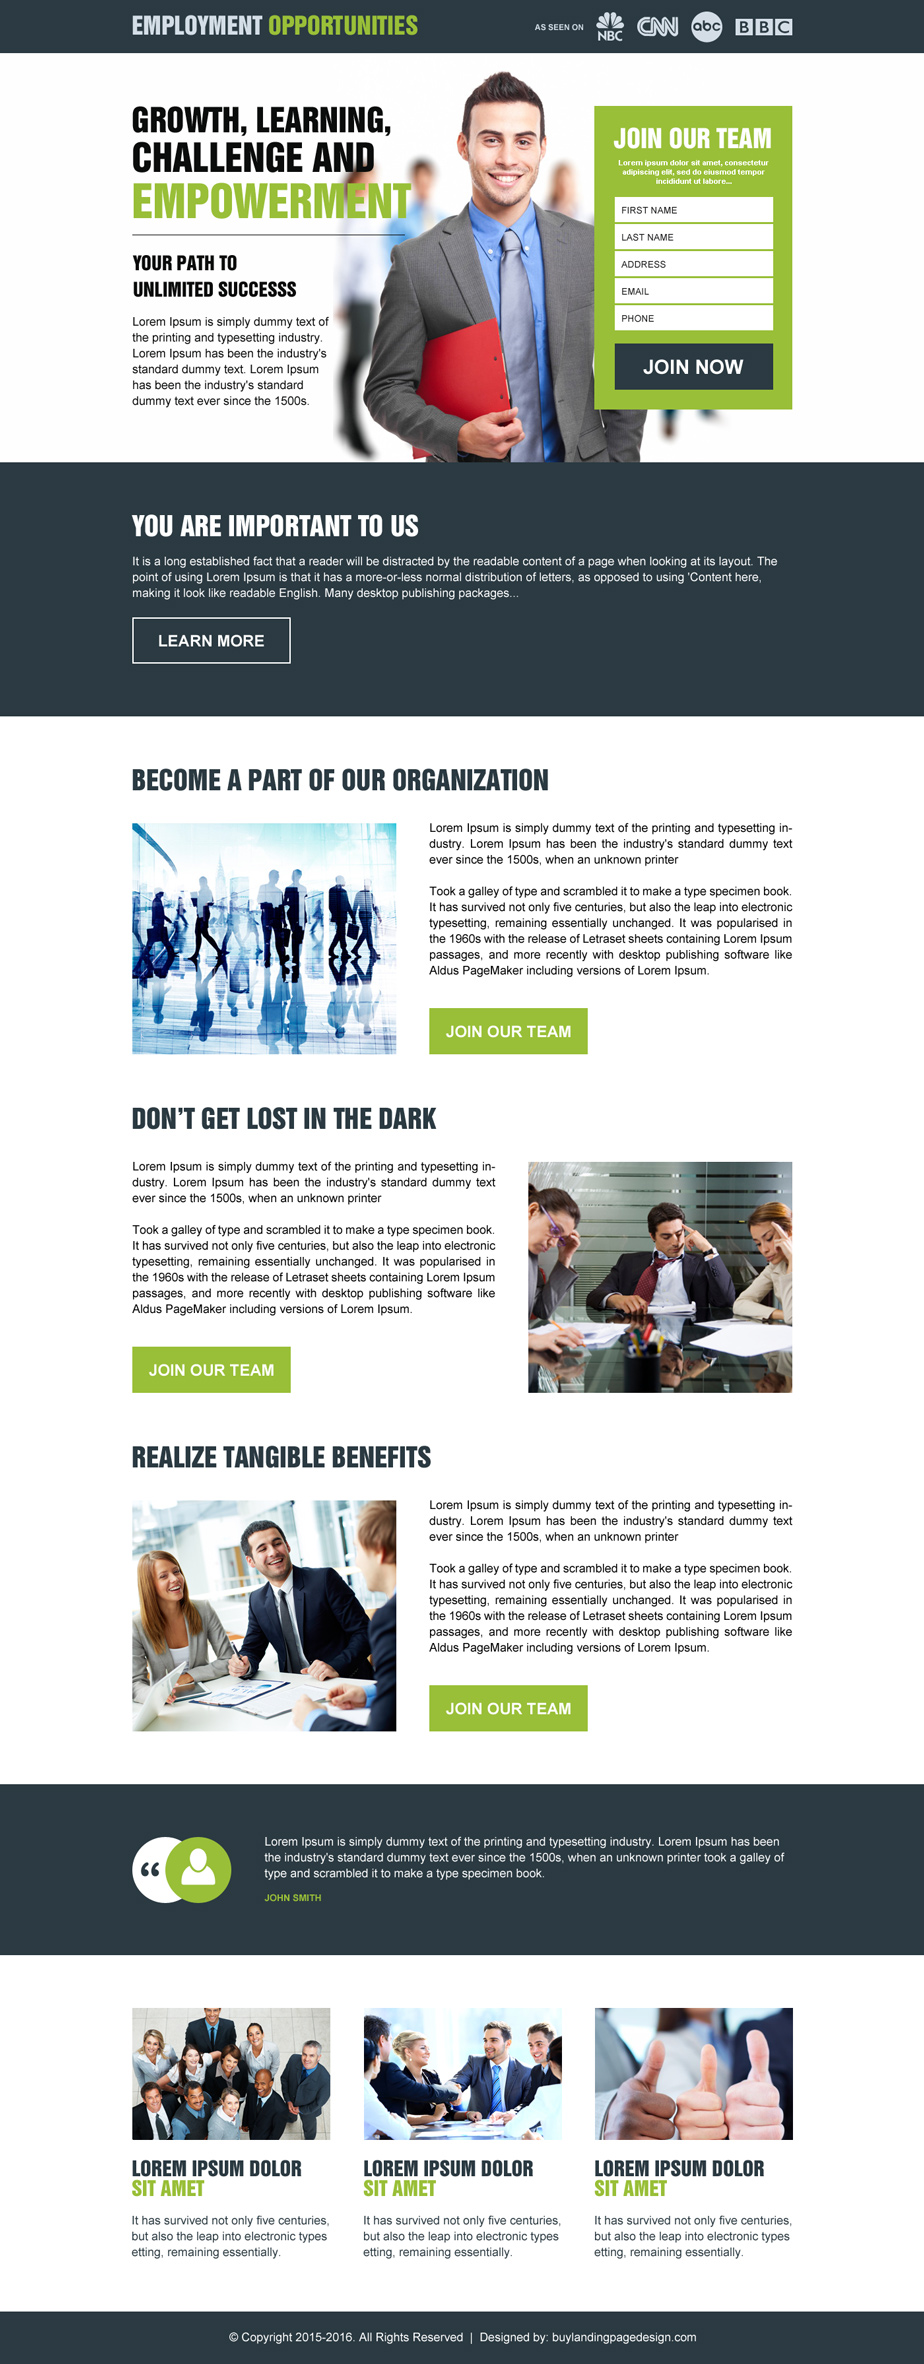 equal-employment-opportunity-lead-generation-responsive-landing-page-design-002